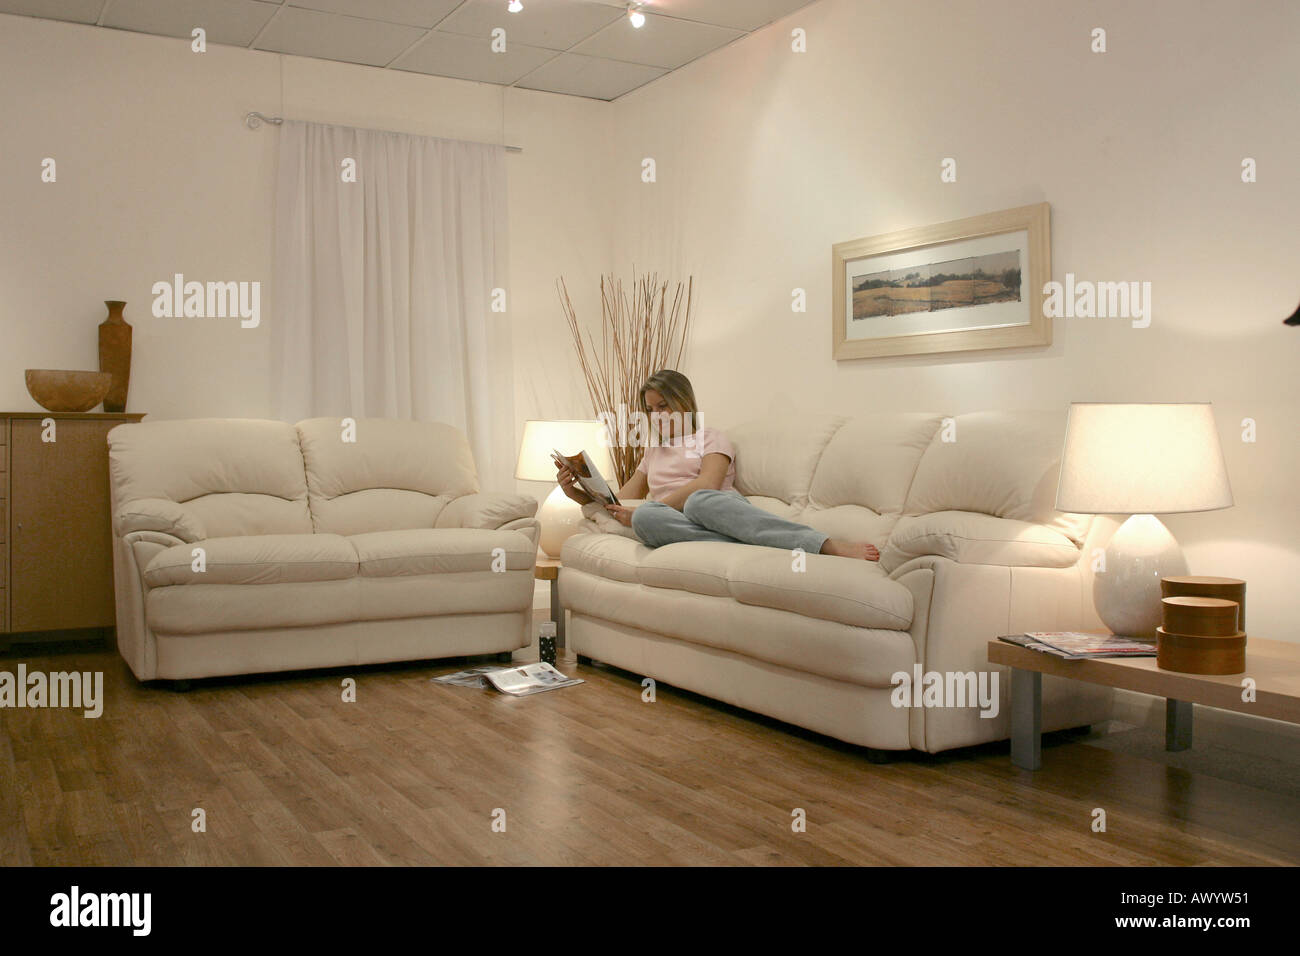 Two Settees and female model - Stock Image